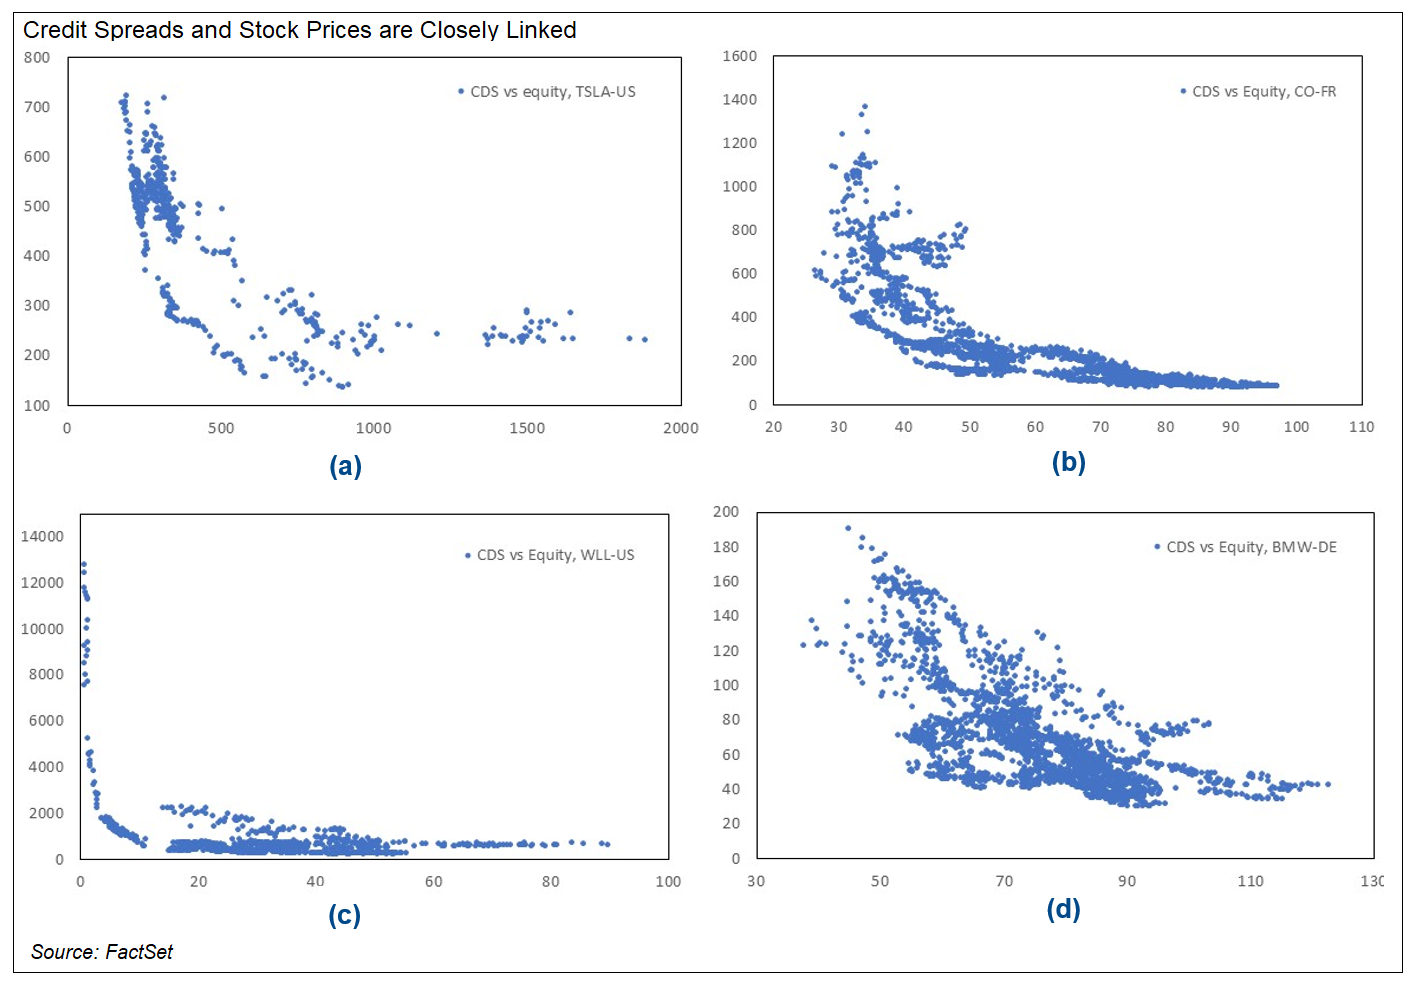 Credit Spreads and Stock Prices